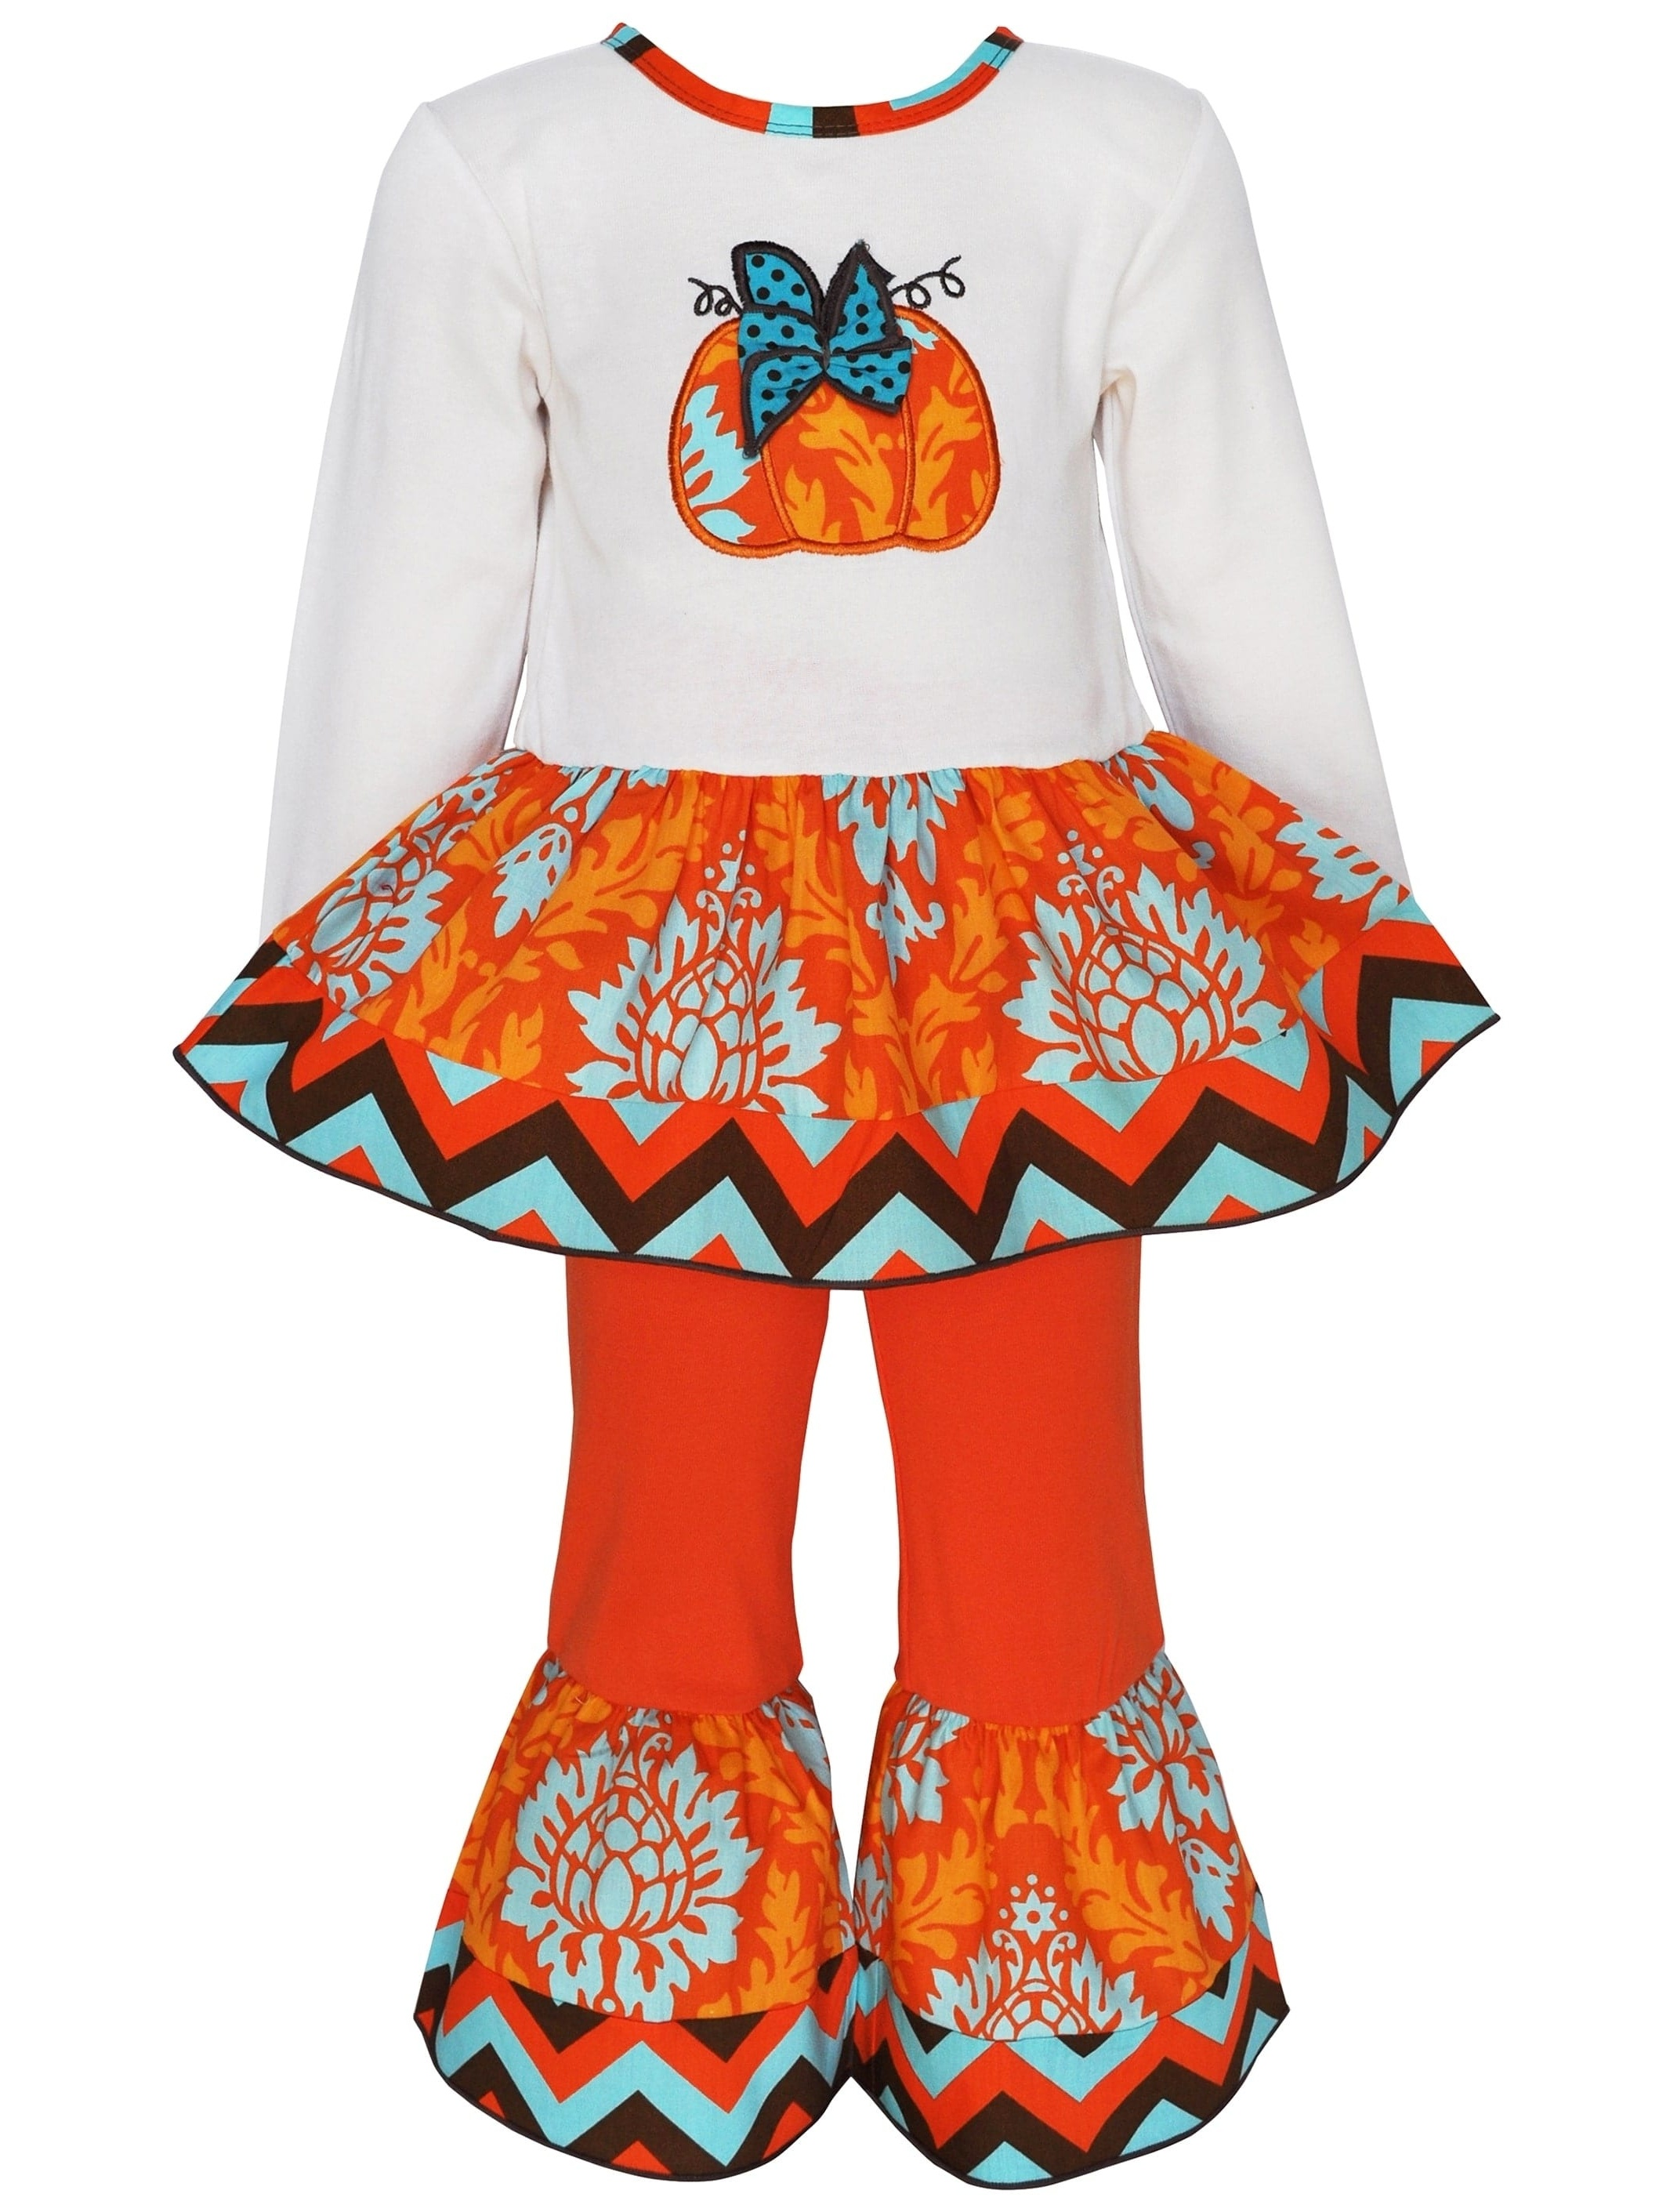 Ann Loren  Girls Boutique Pumpkin Patch Damask Thanksgiving Outfit Set